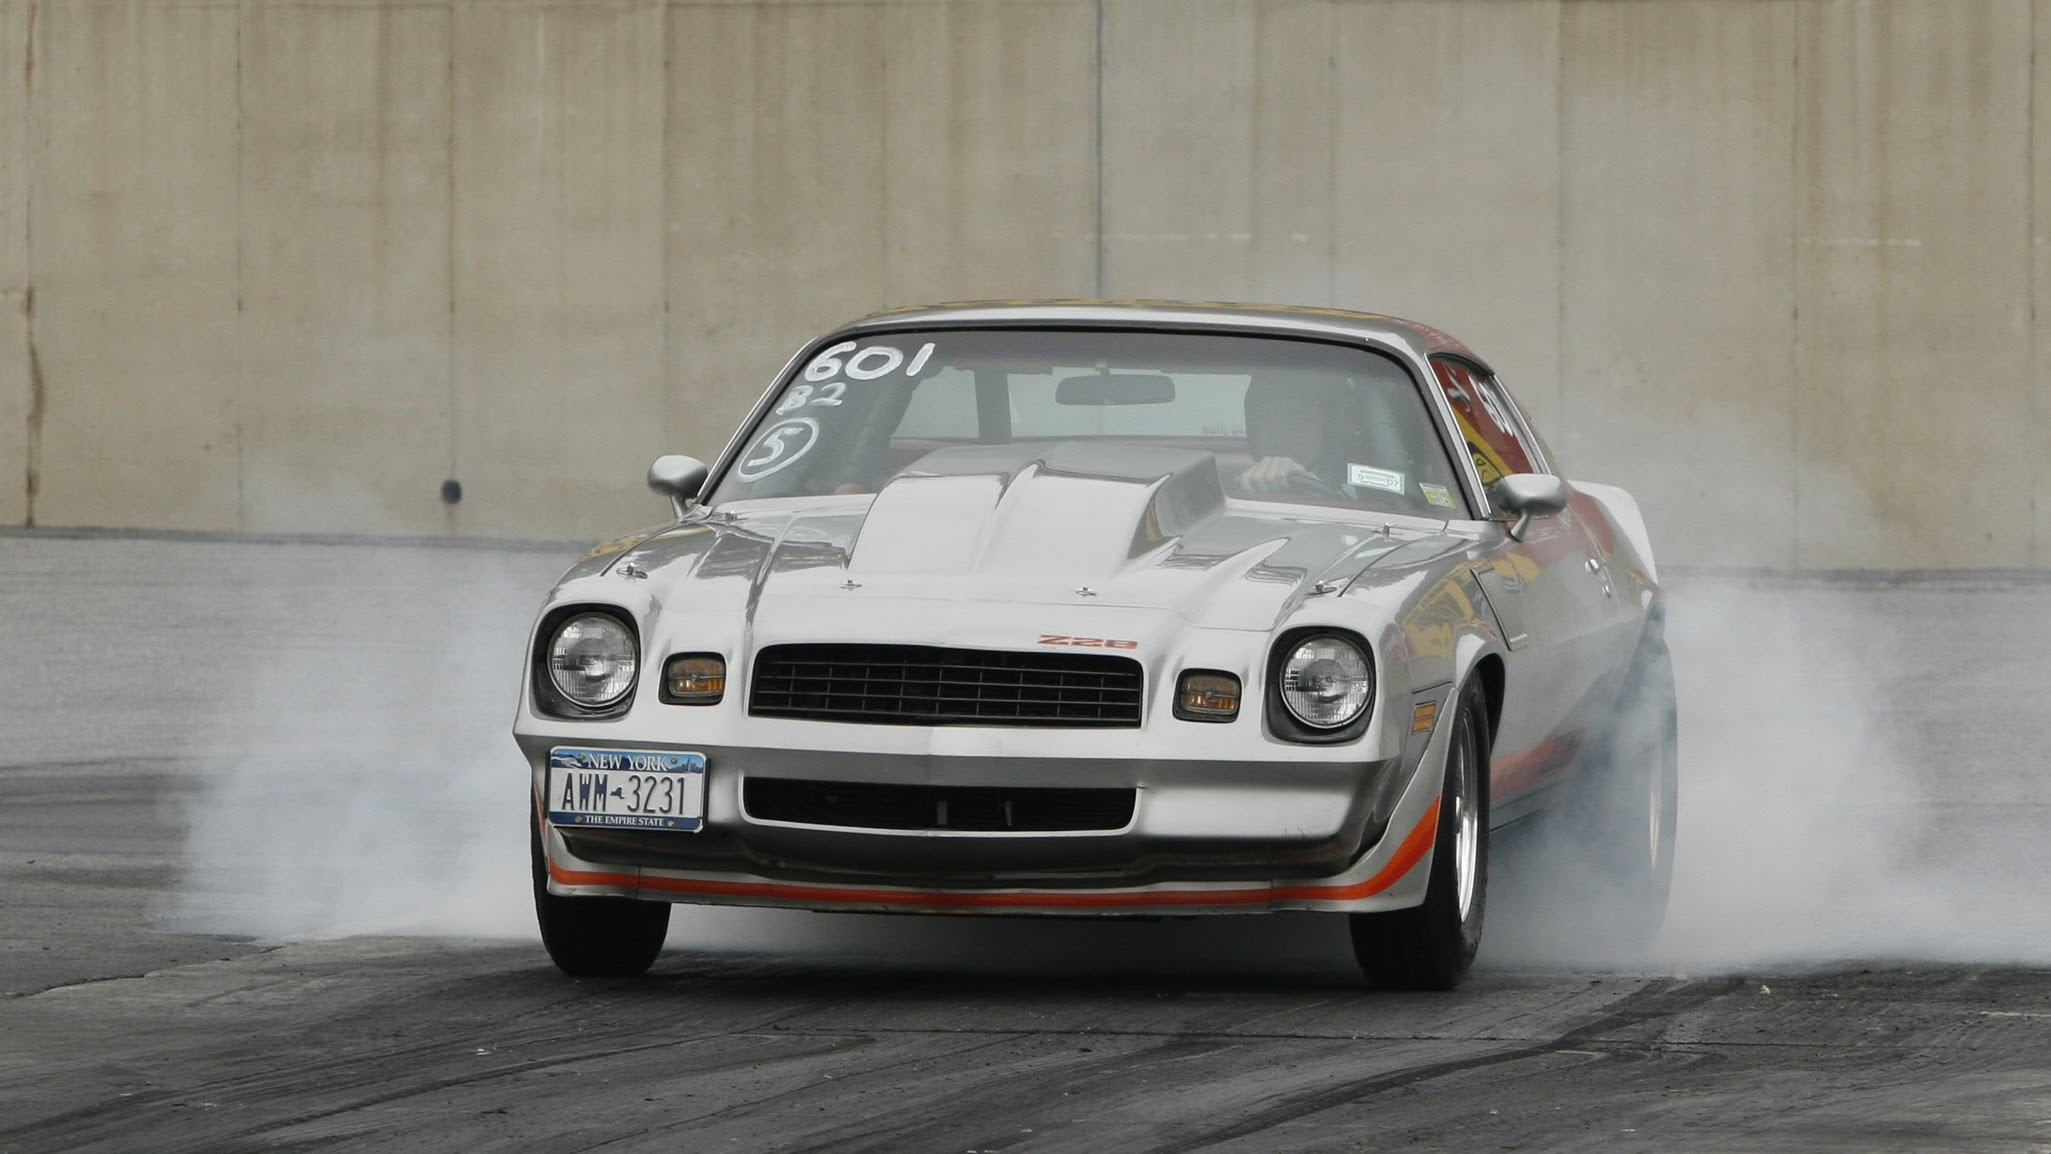 Andy79Z28 13